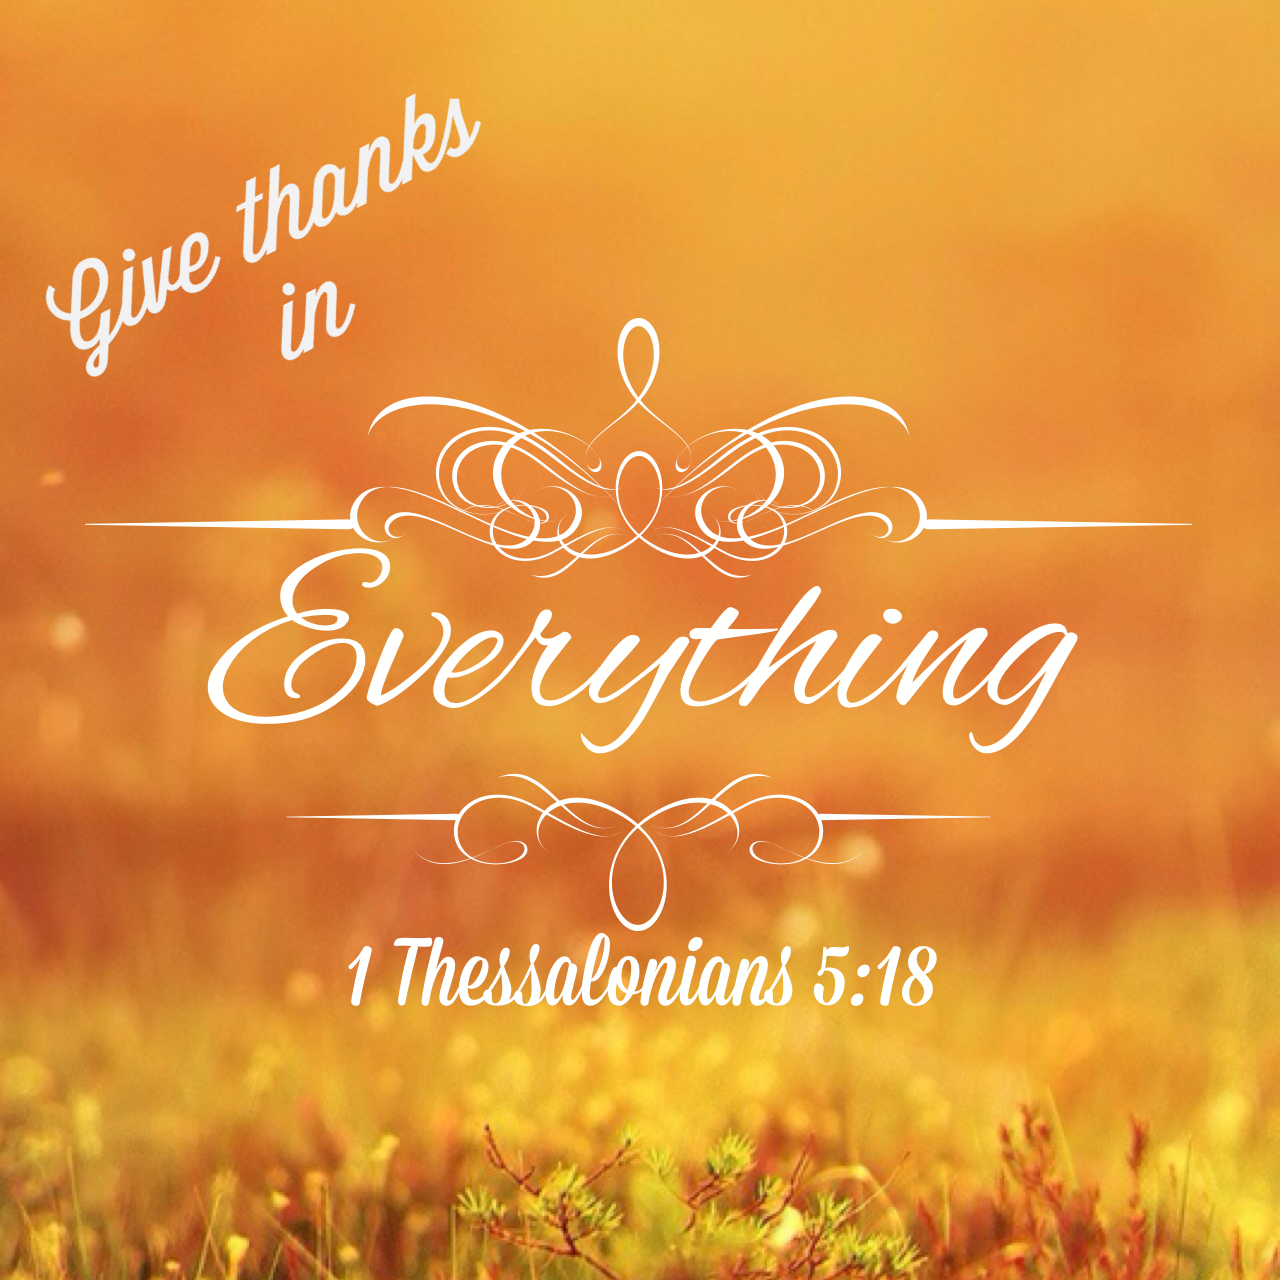 Having a thankful heart will change your life!